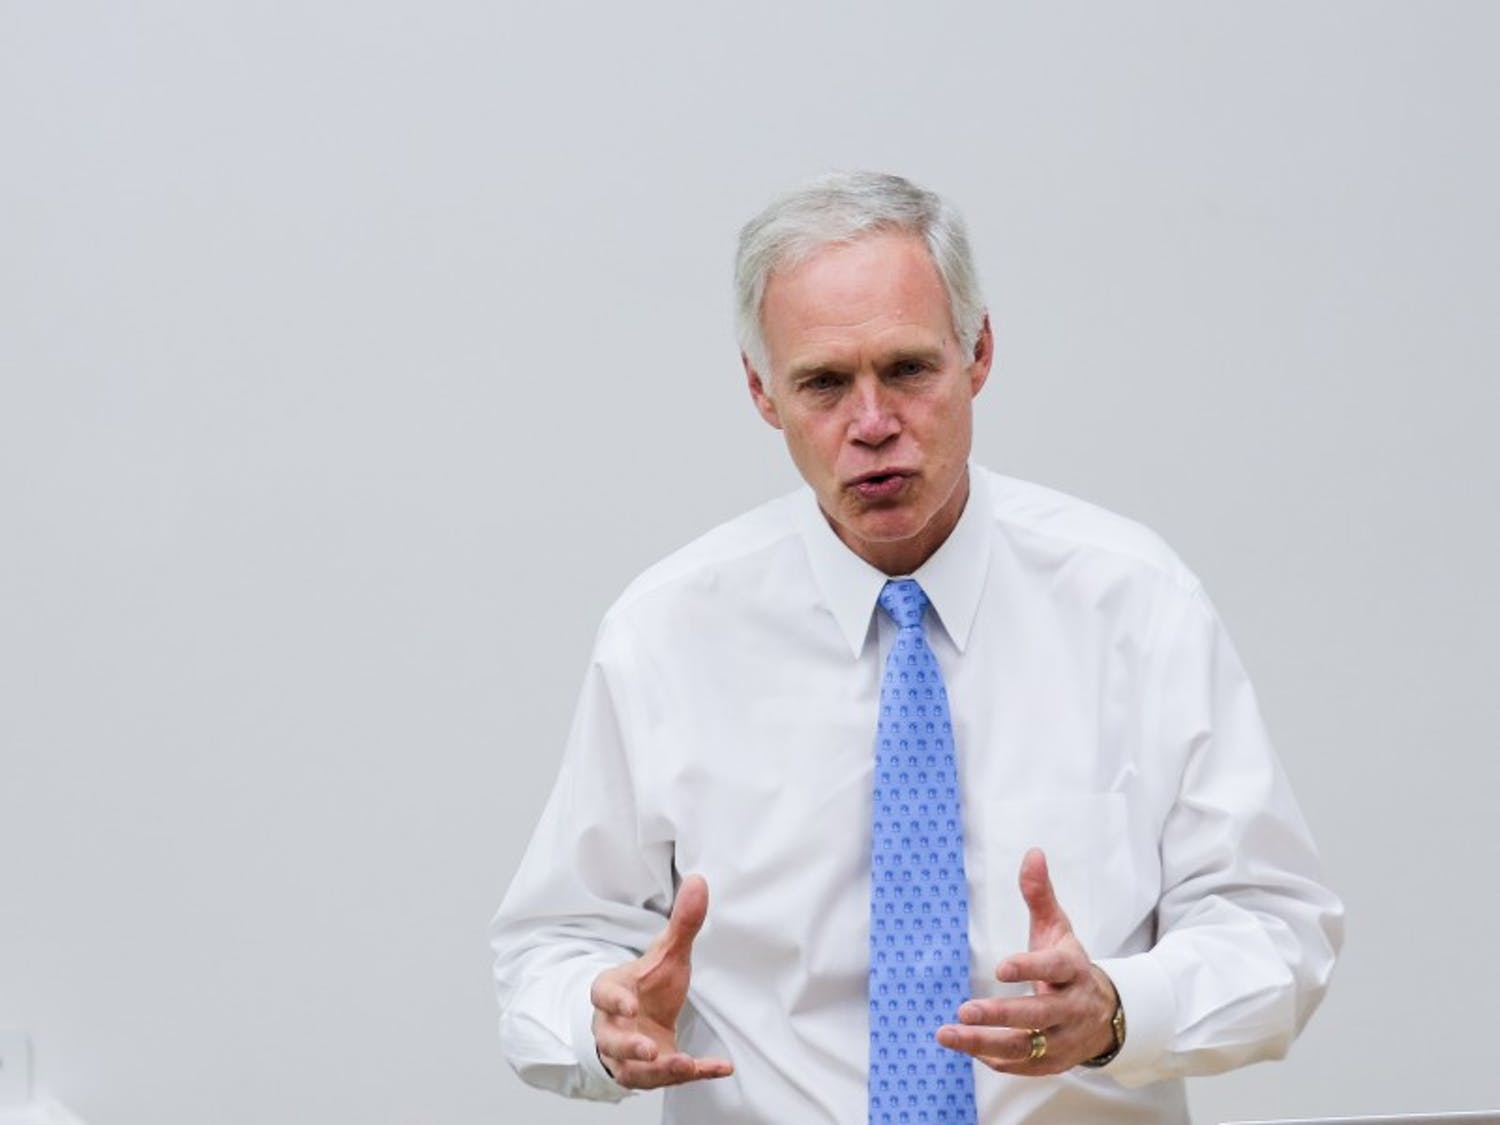 """I take the position that we shouldn't have a special counsel at this time. We should let the [congressional] committees do their work,"" U.S. Sen. Ron Johnson, R-Wis., said."